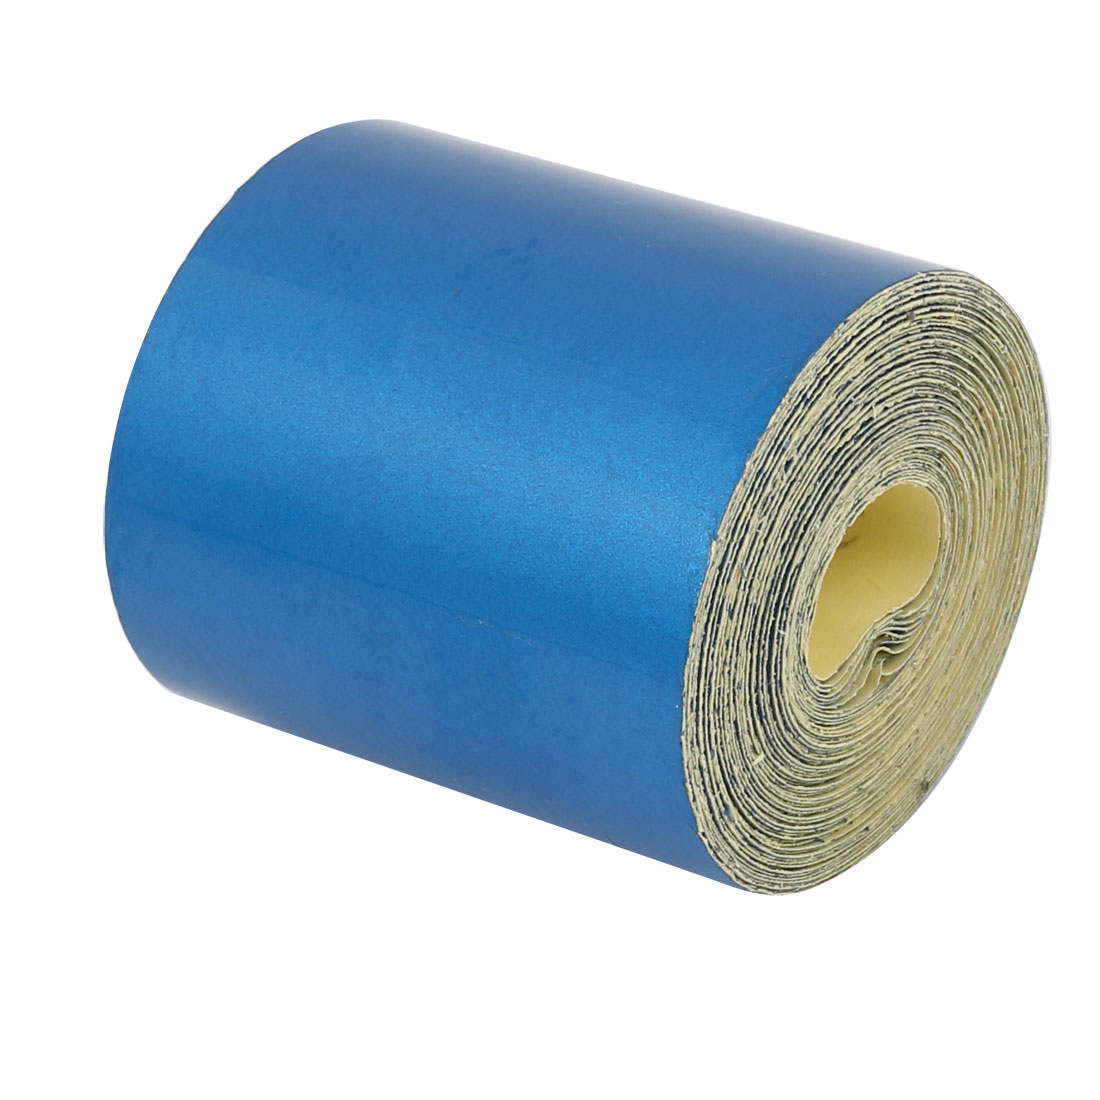 5cm Width 6 Meters Length Single Sided Adhesive Reflective Warning Tape Blue